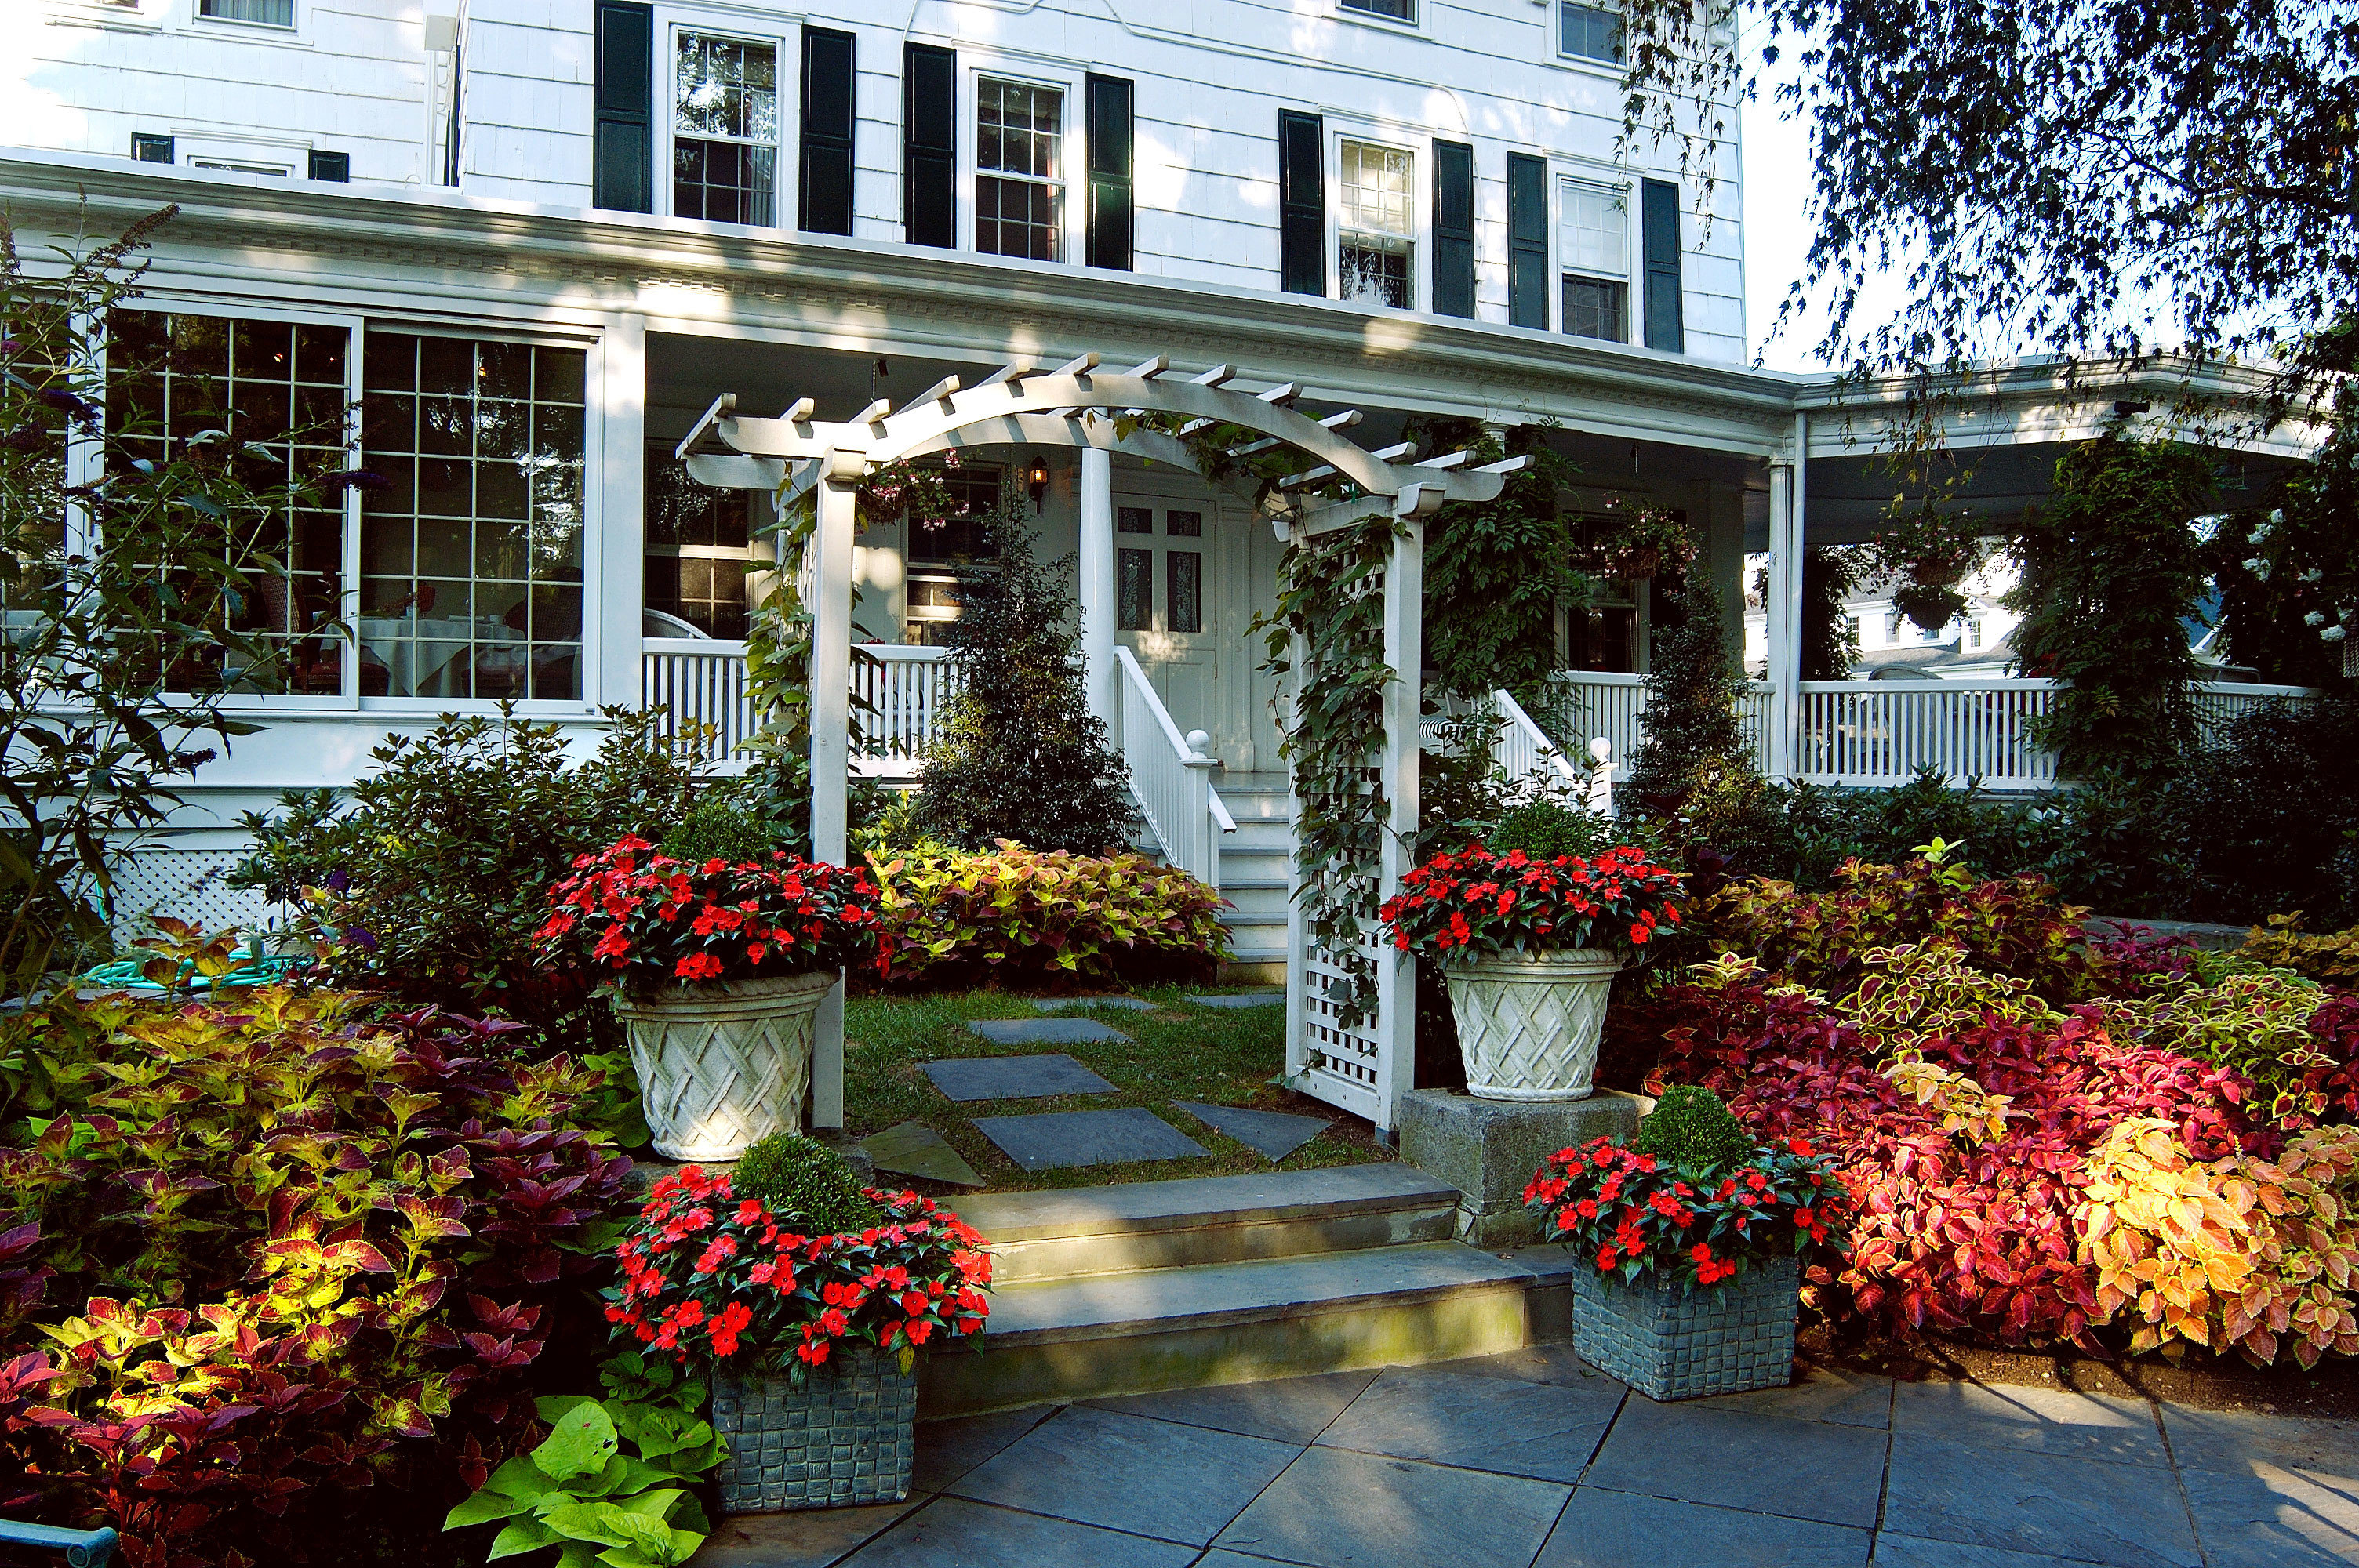 Country Elegant Girls Getaways Grounds Inn Trip Ideas Weekend Getaways building outdoor tree flower house plant Courtyard backyard Garden home estate yard residential area porch outdoor structure facade bushes cottage landscaping stone